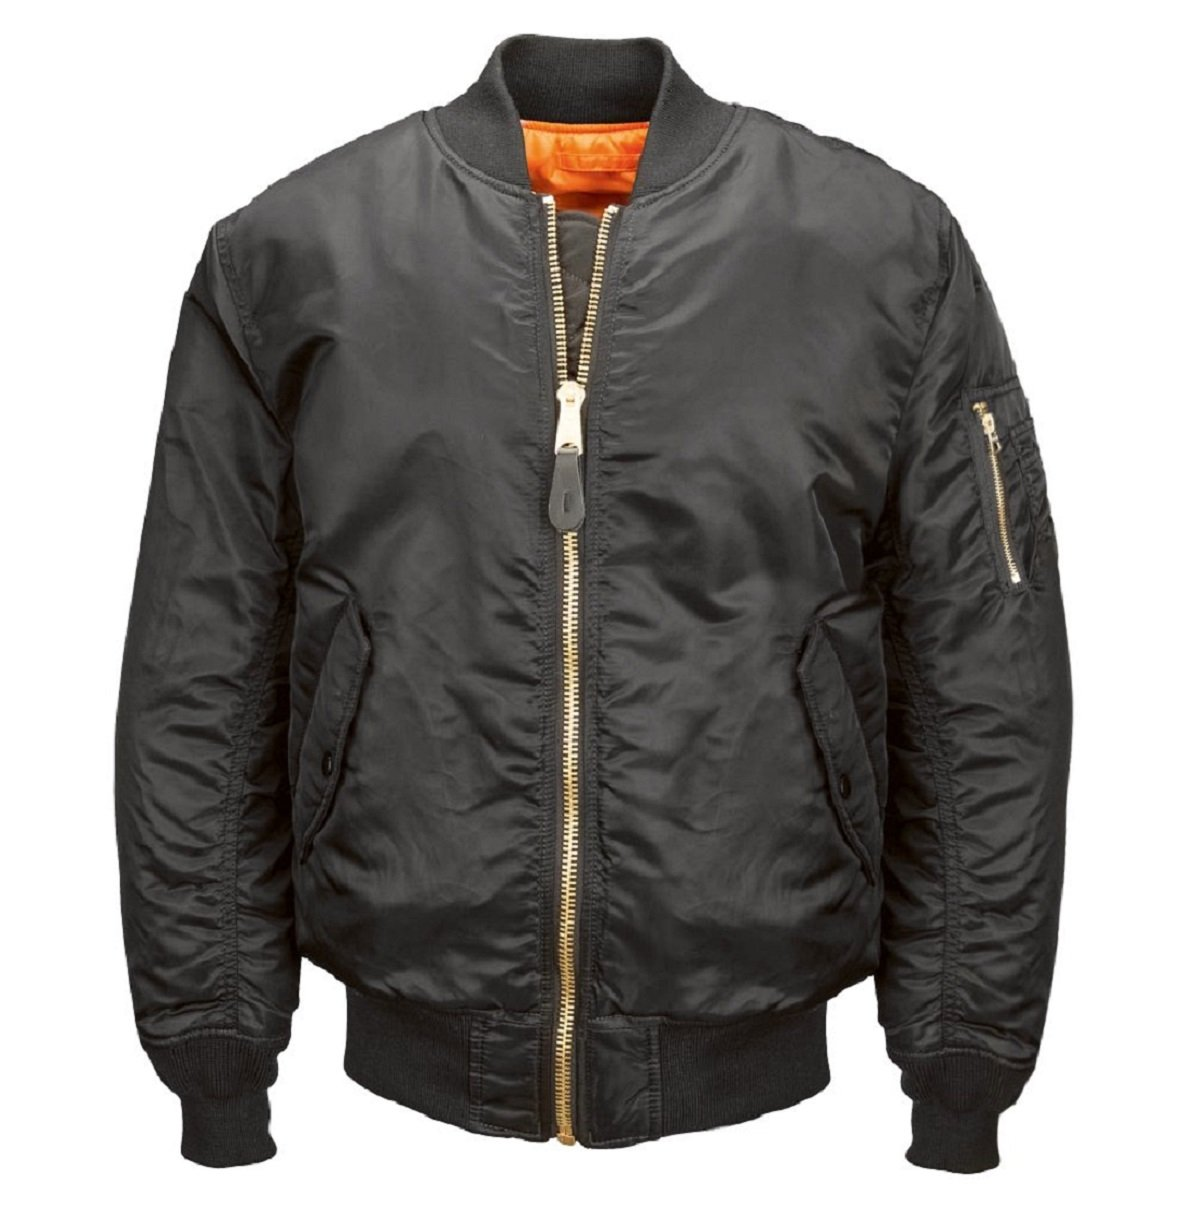 Alpha Industries Men's MA-1 Blood Chit Flight Bomber Jacket, Black, Small by Alpha Industries